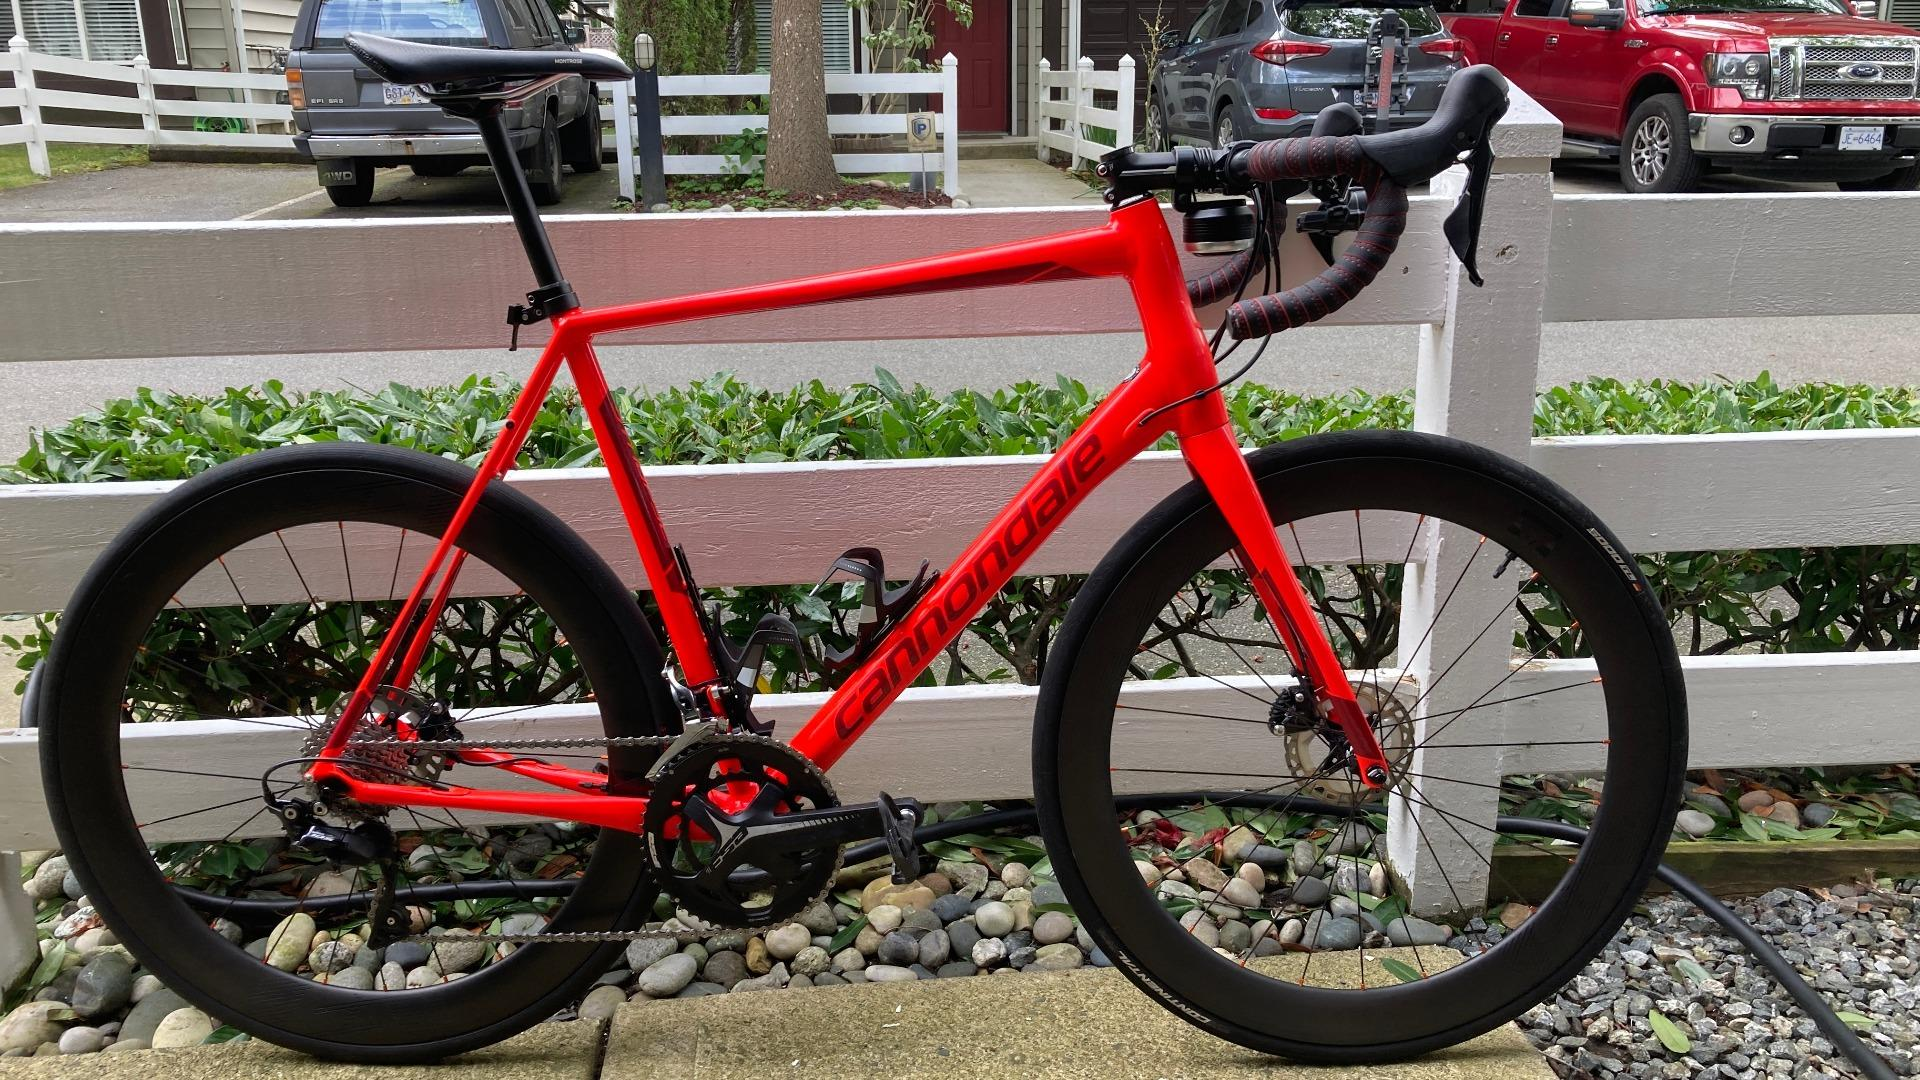 AR56-56mm-700c-carbon-wheels-on-cannondale-road-disc-frame